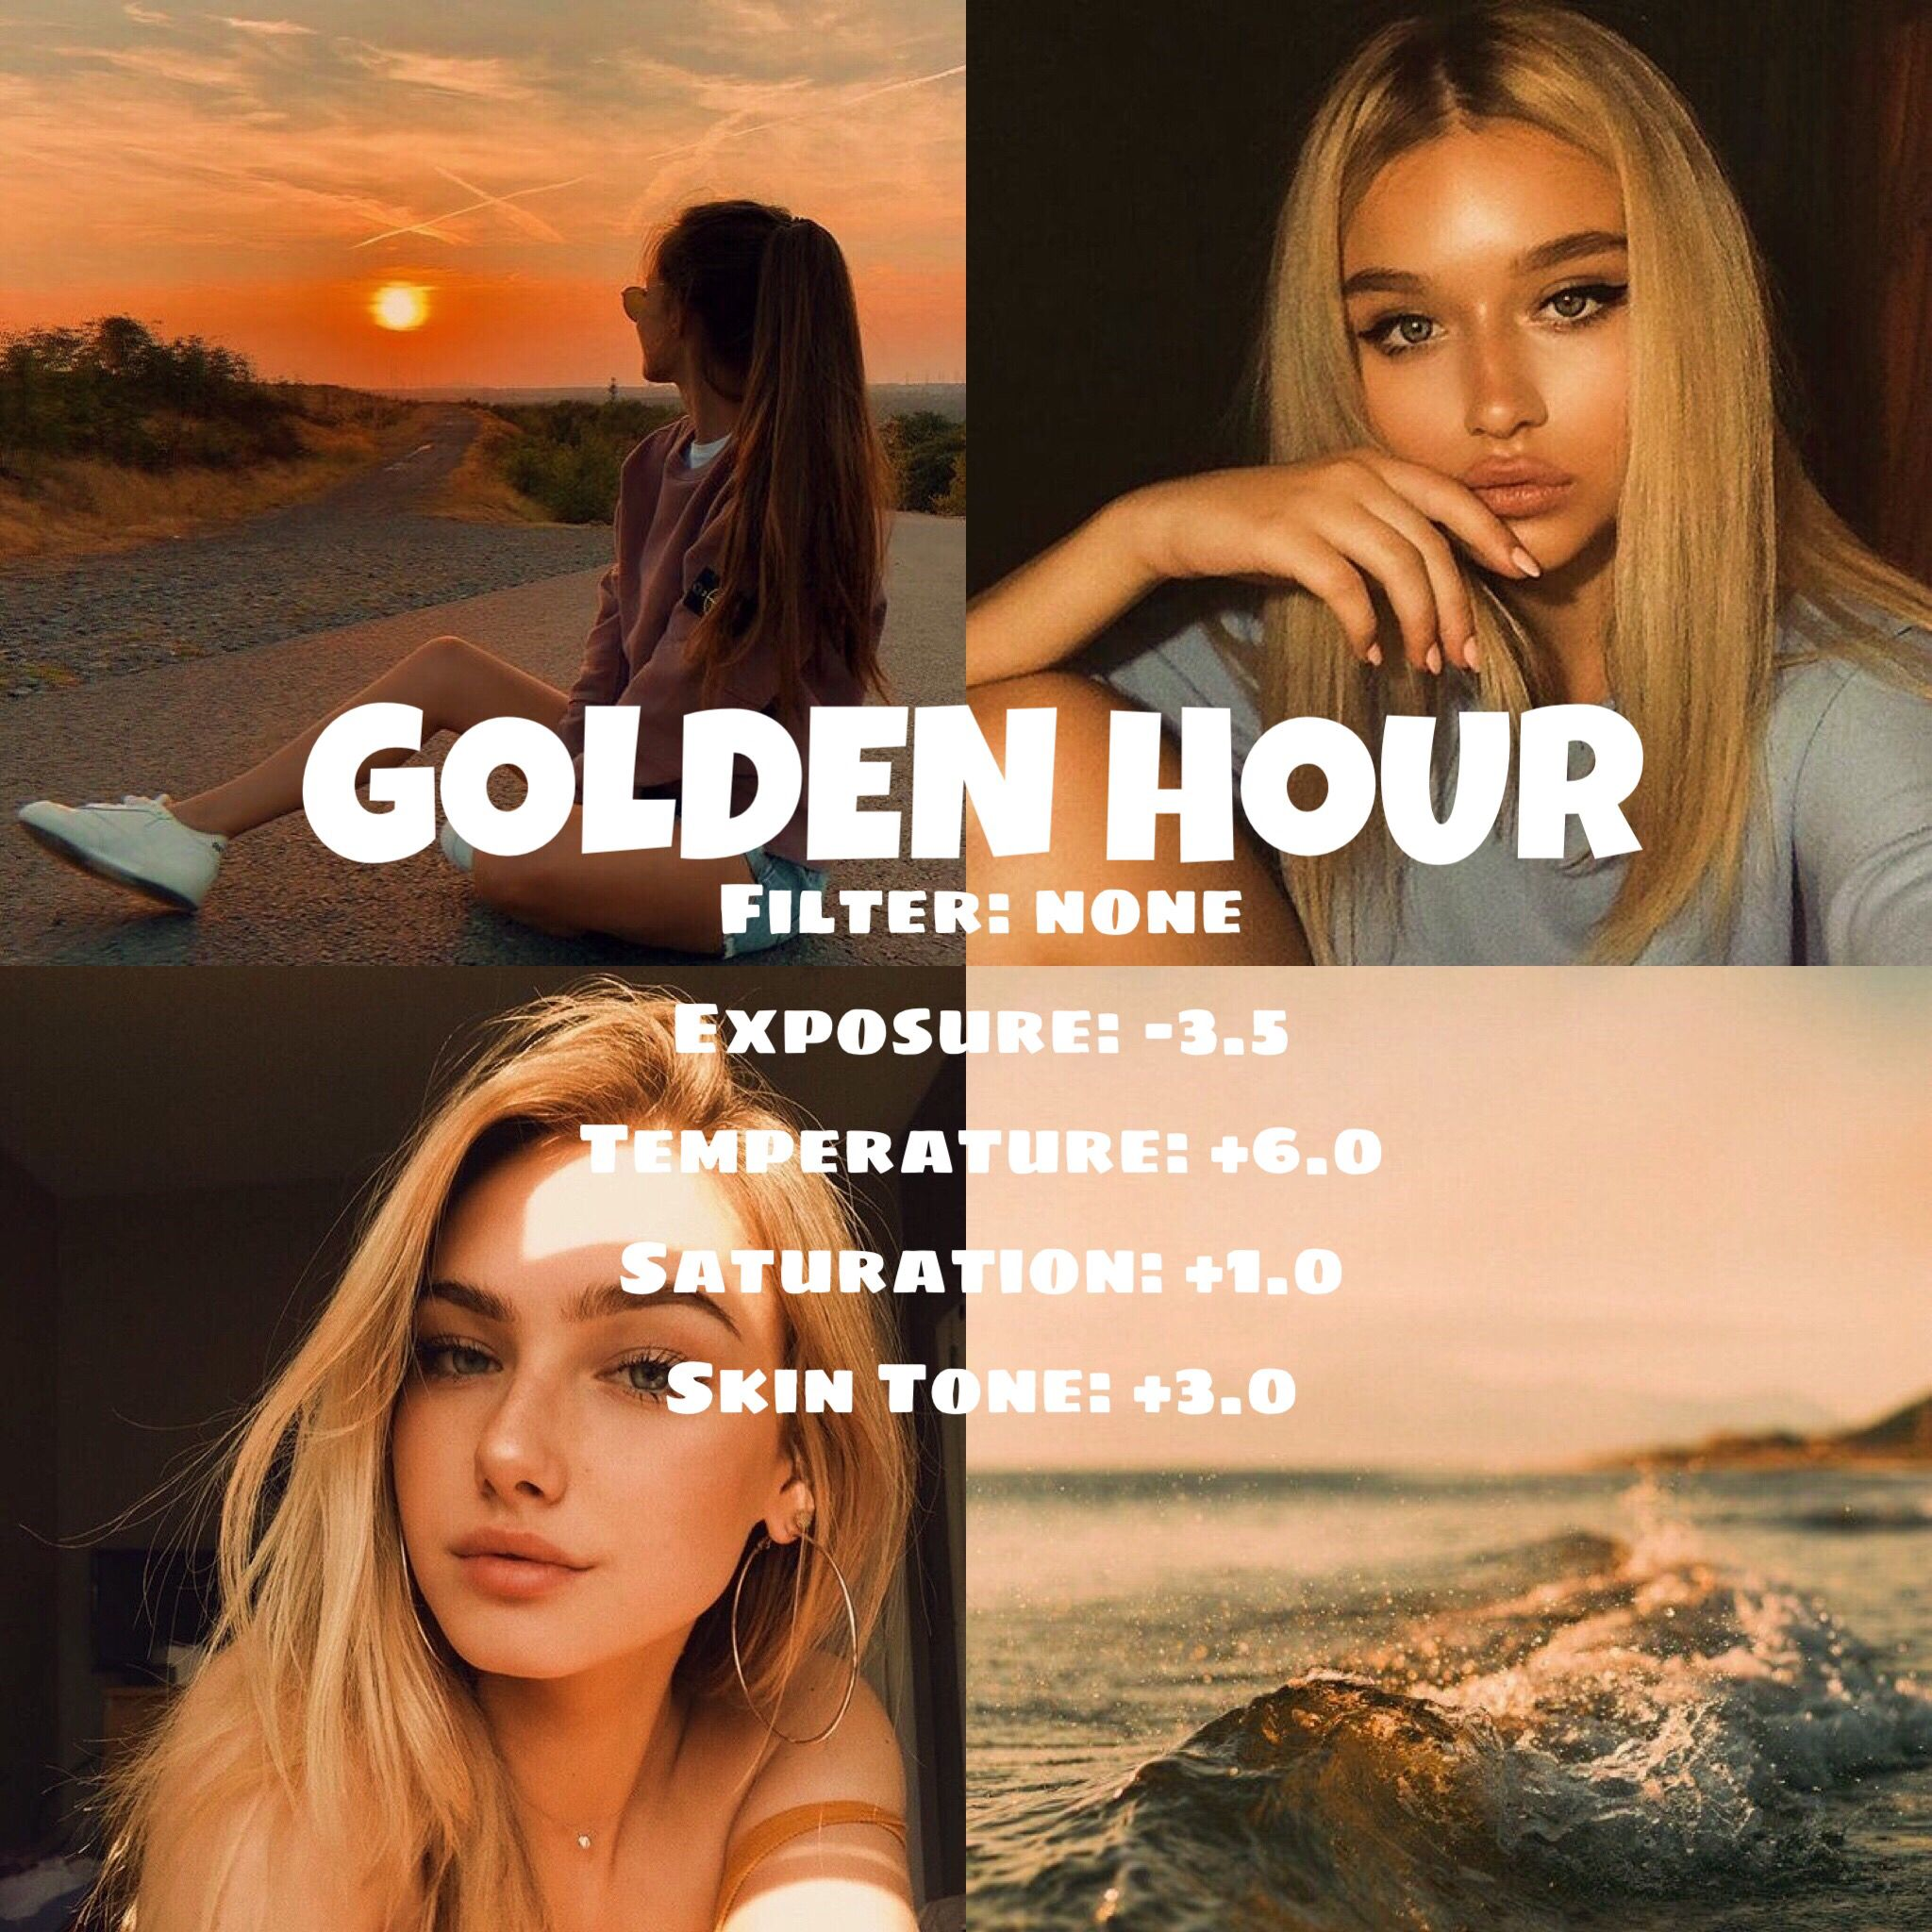 Golden hour  | Random | Vsco photography, Photo editing vsco